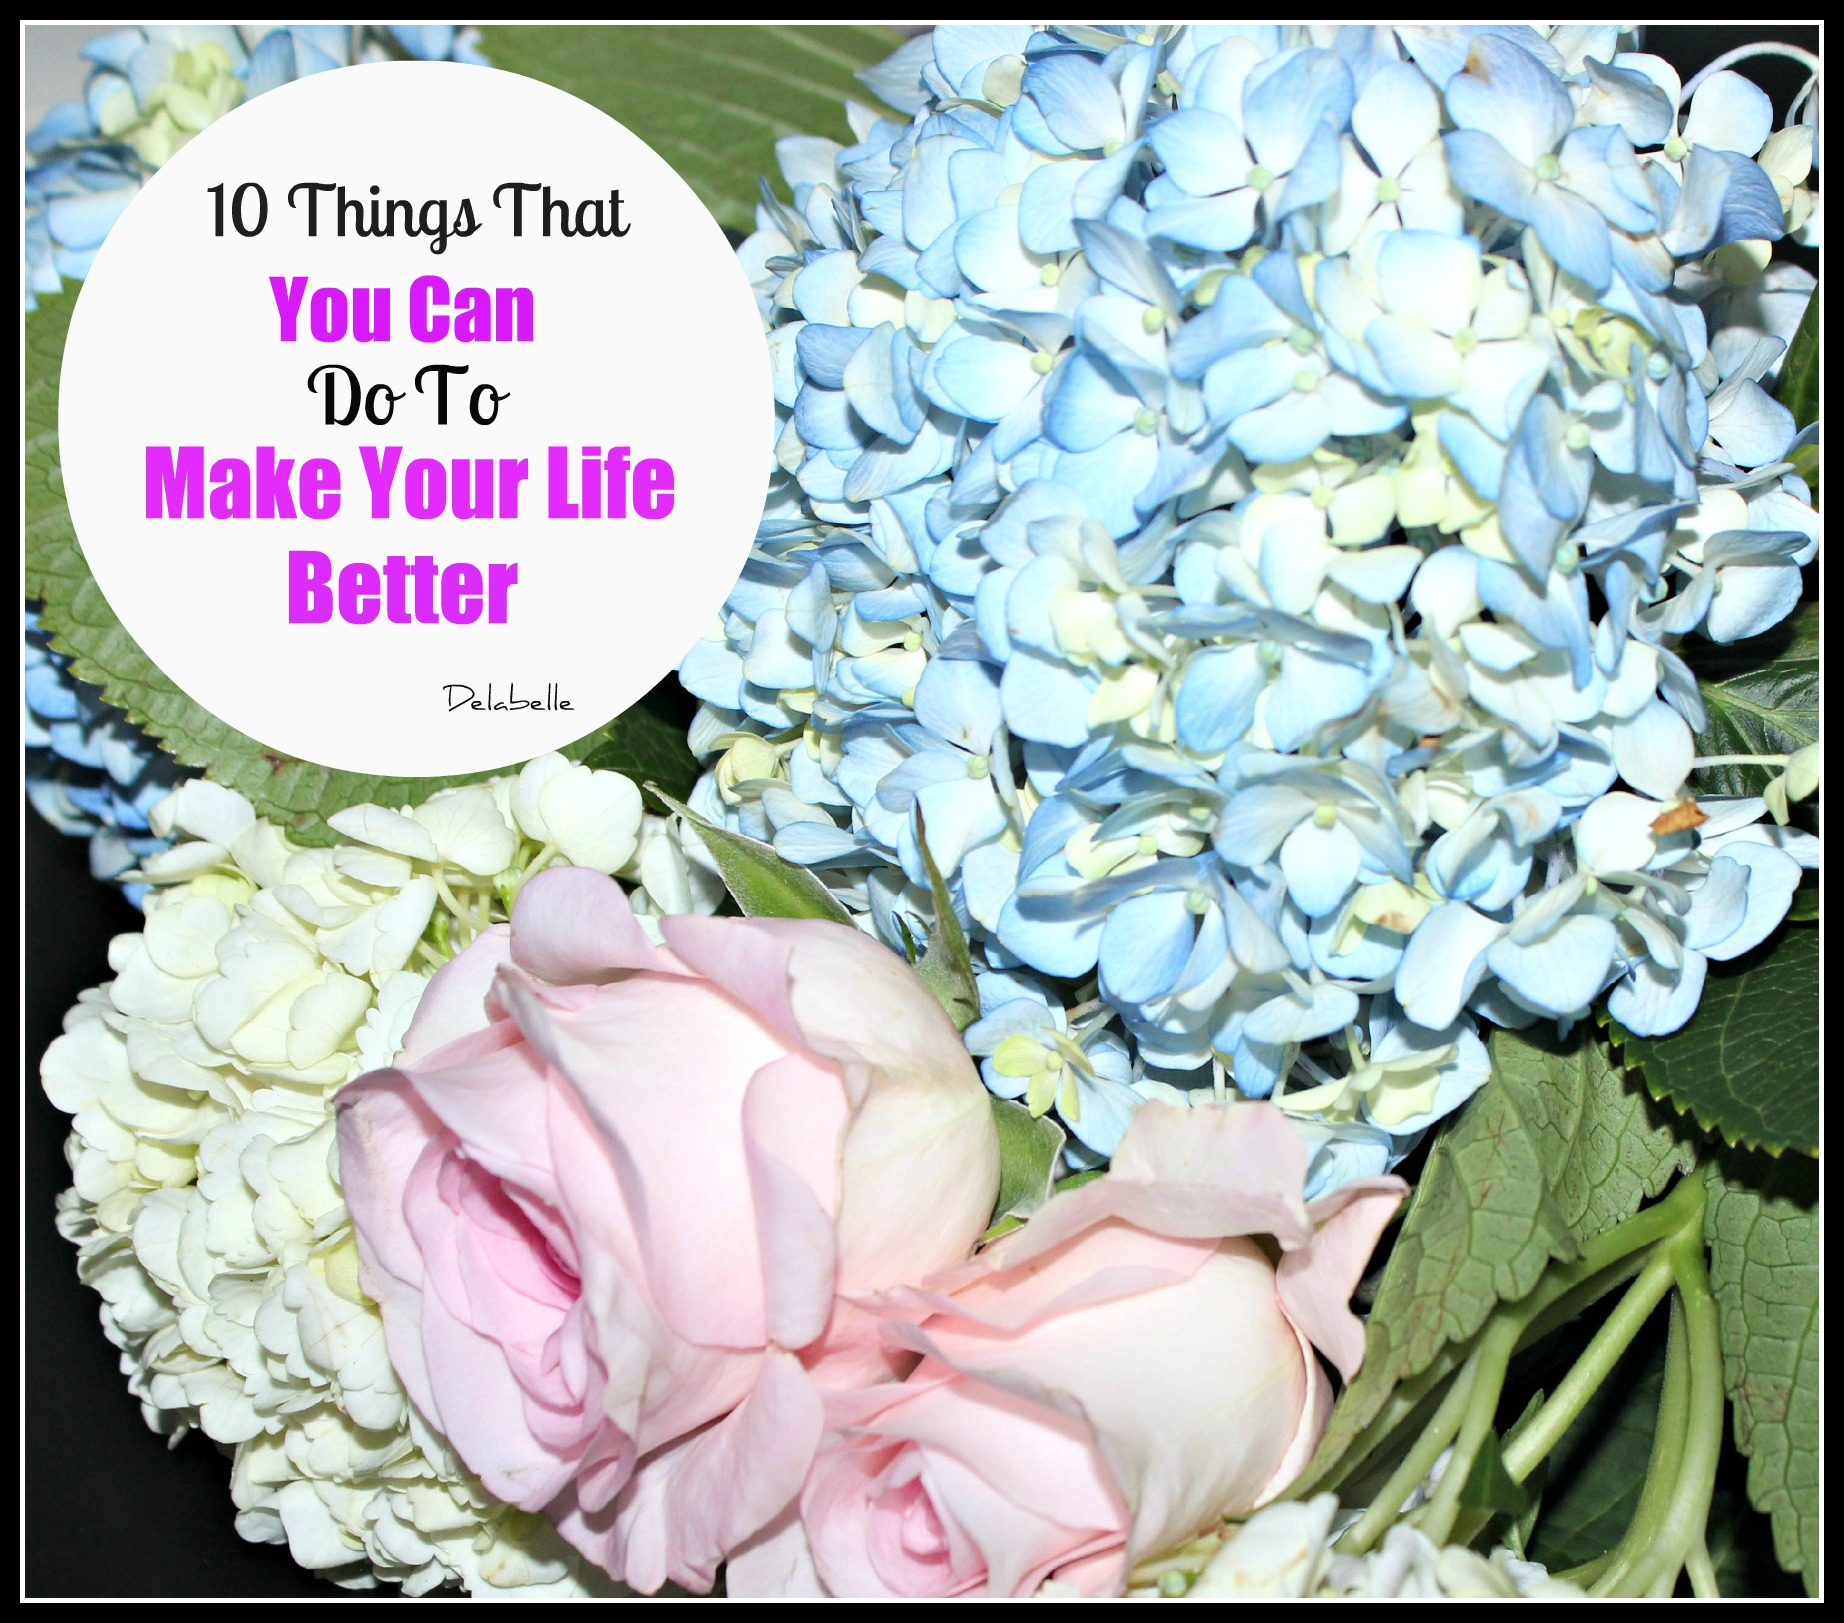 10 Things That You Can Do To Make Your Life Better: Journal Snippet